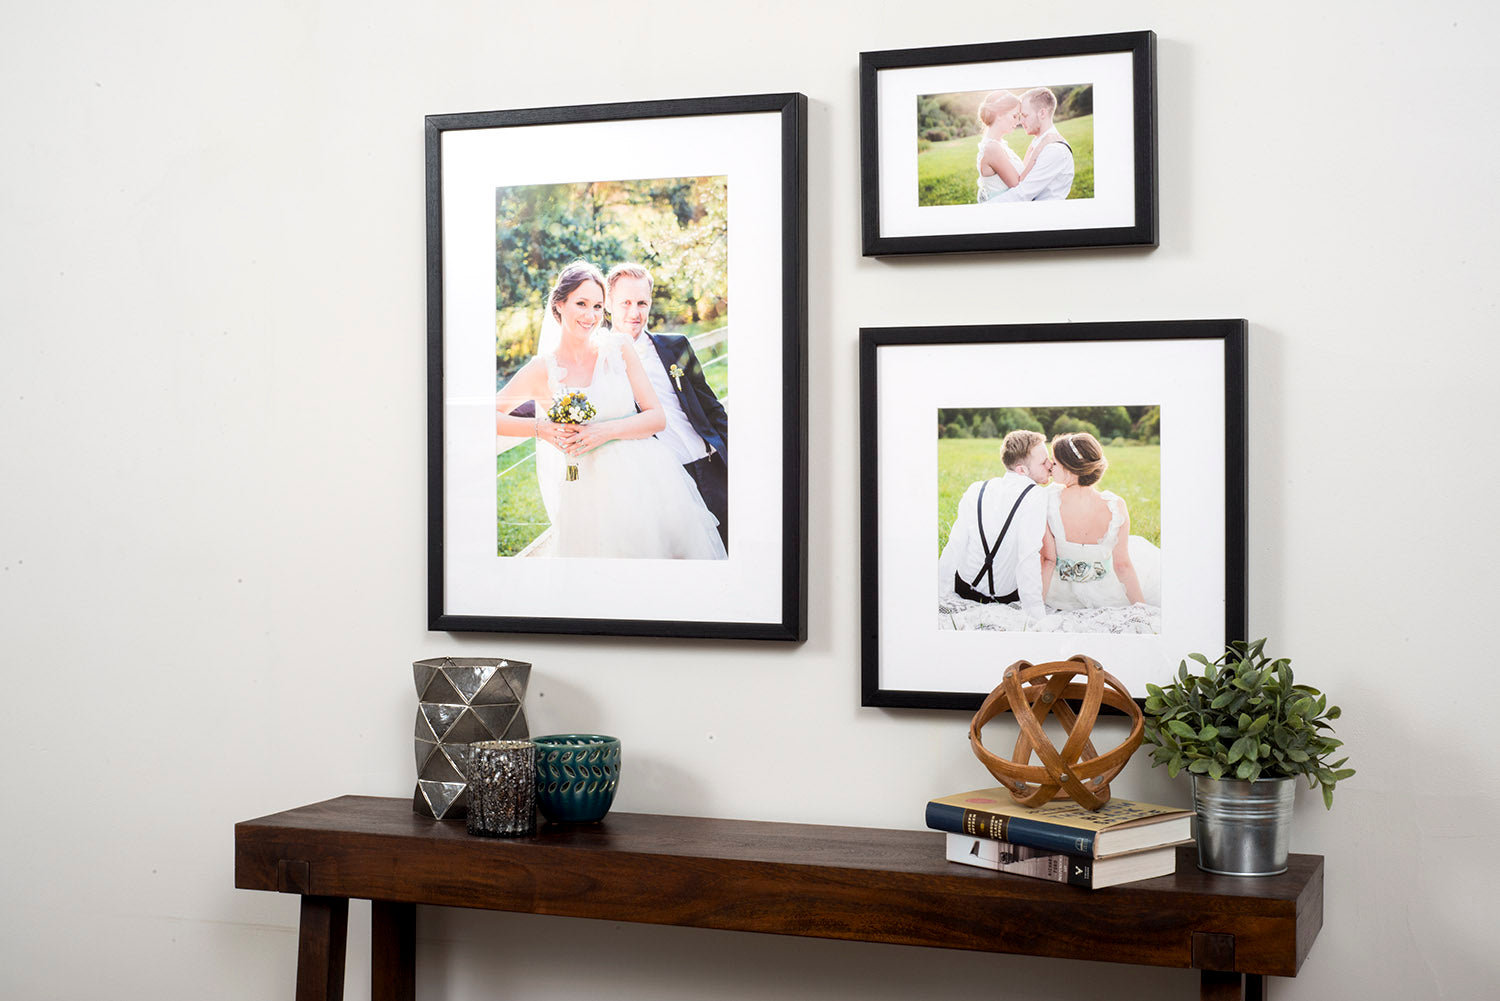 Gallery Frames with Wedding Photos - Custom Framed Prints by Posterjack Canada